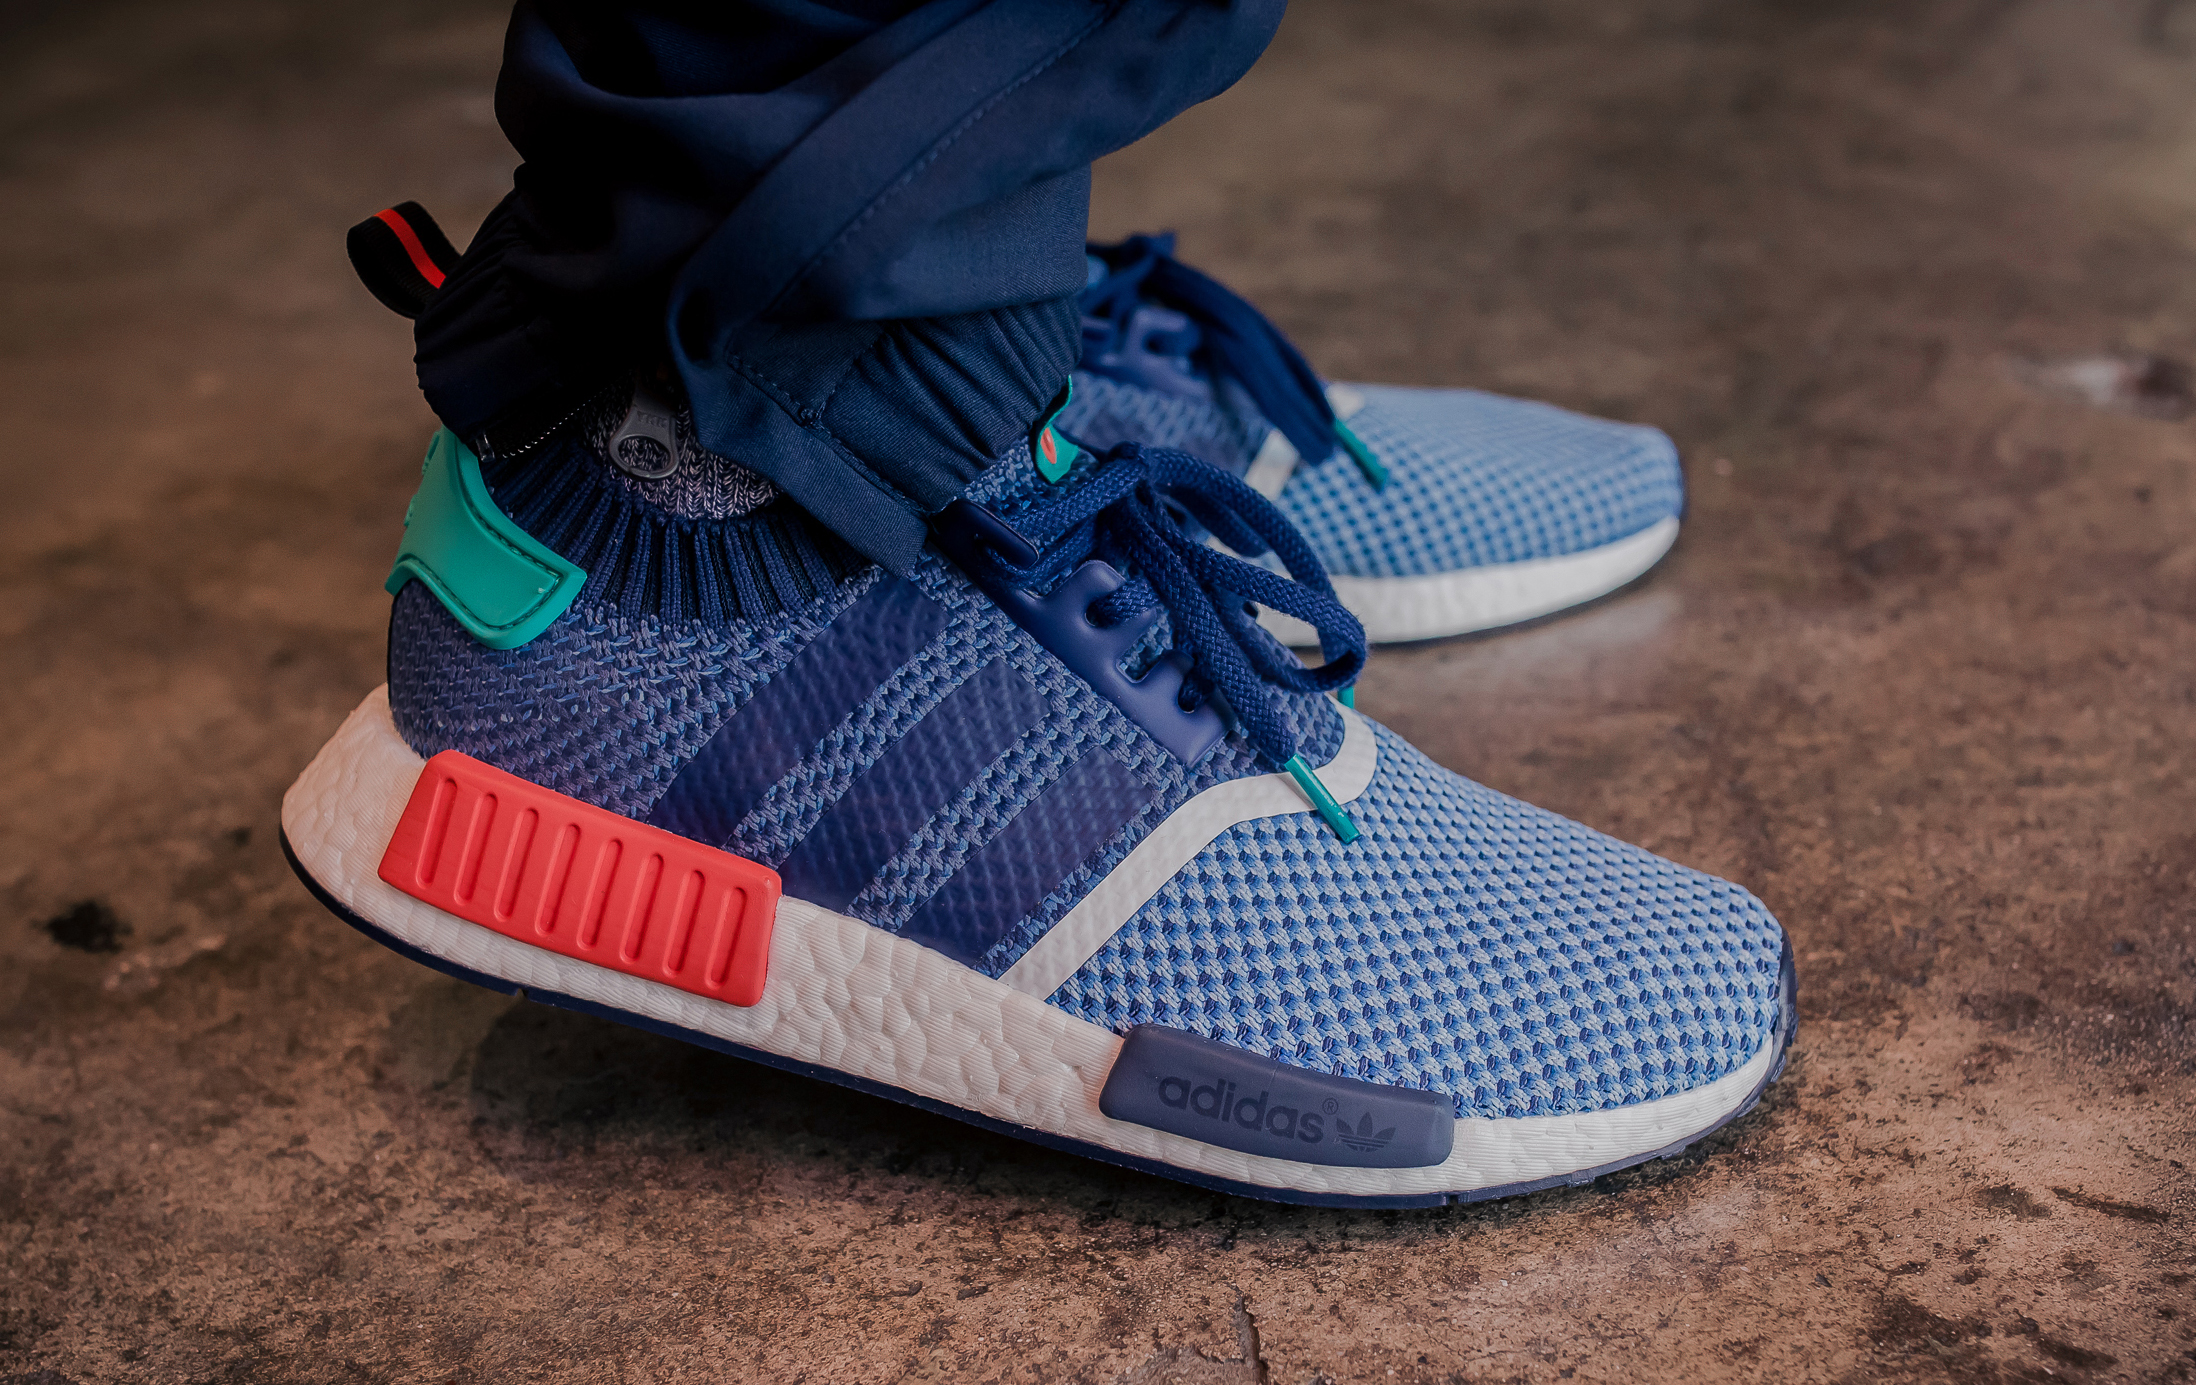 packer-shoes-adidas-nmd_03